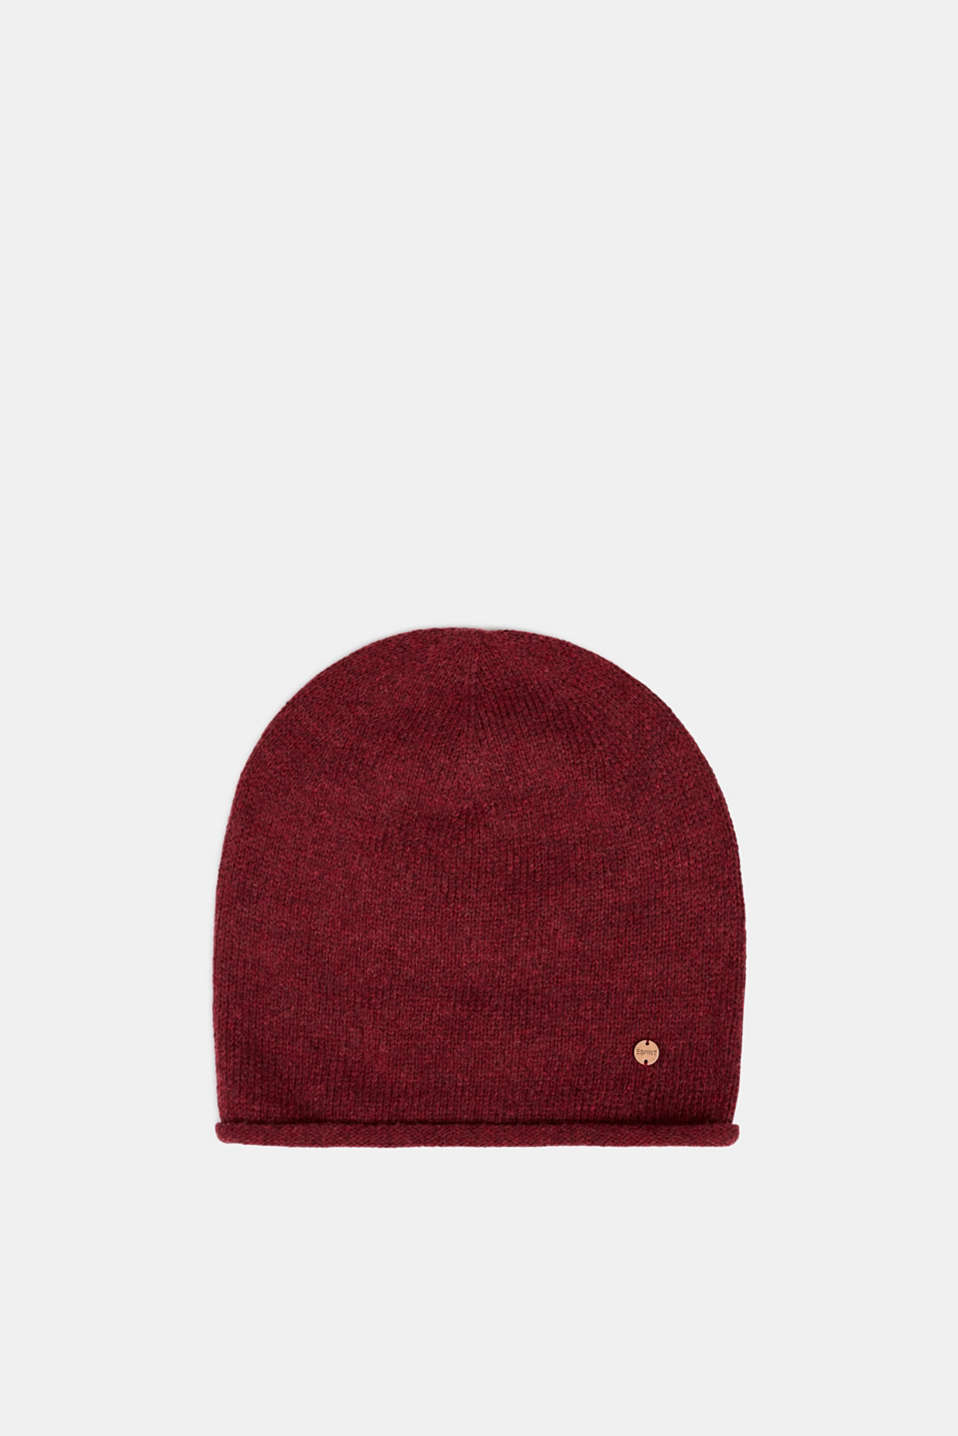 Esprit - Knit cap with wool